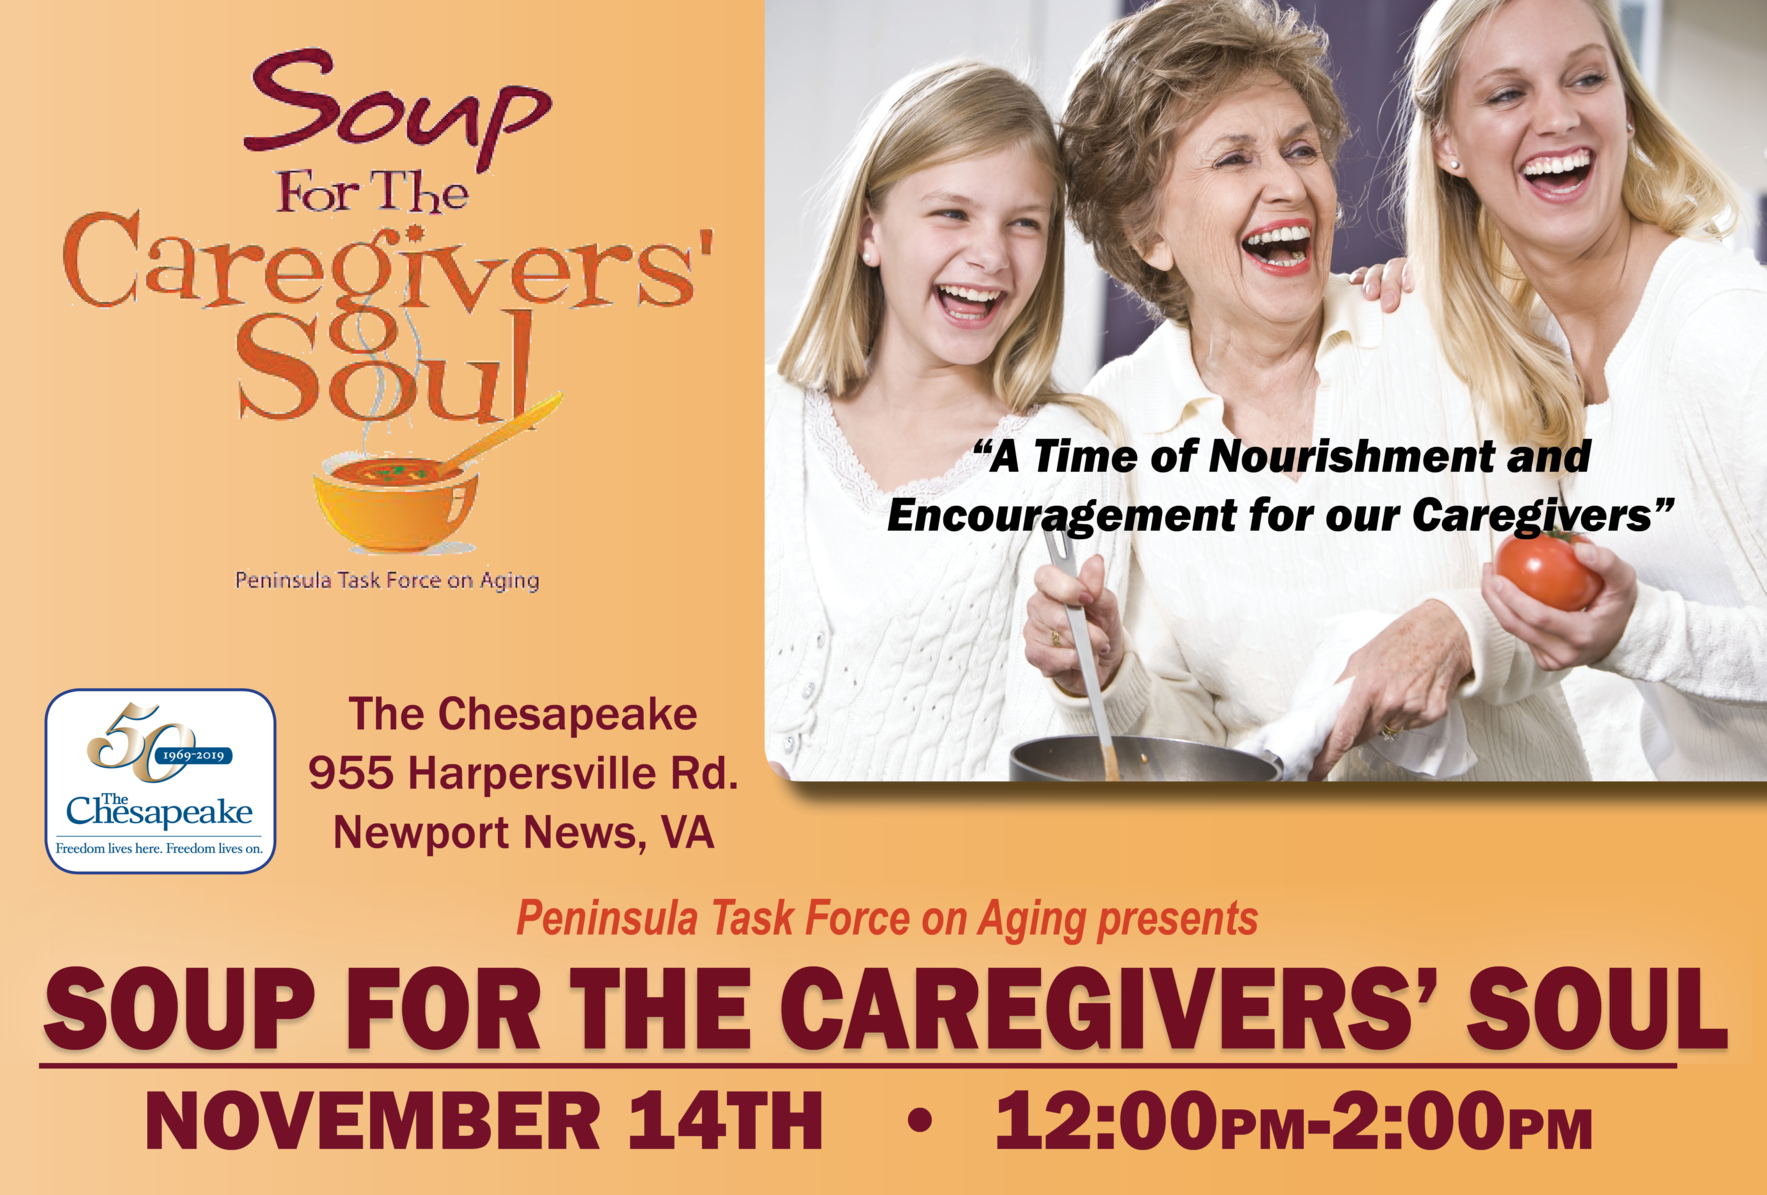 2019 Soup for the Caregivers' Soul image